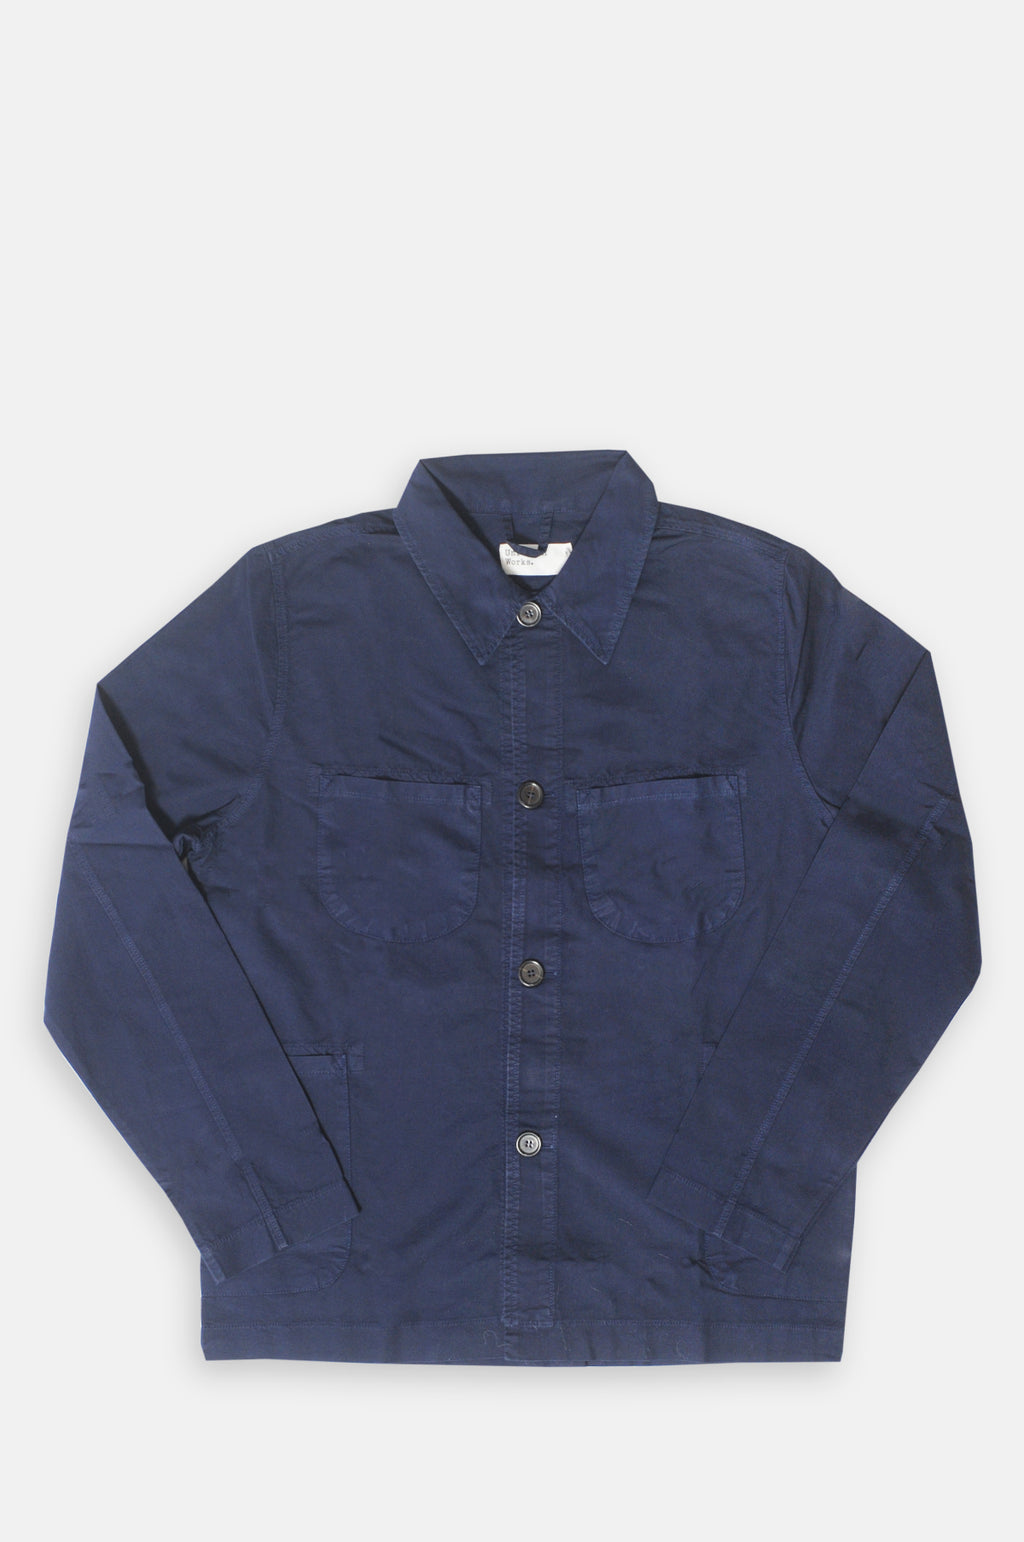 Lumber Jacket in Navy